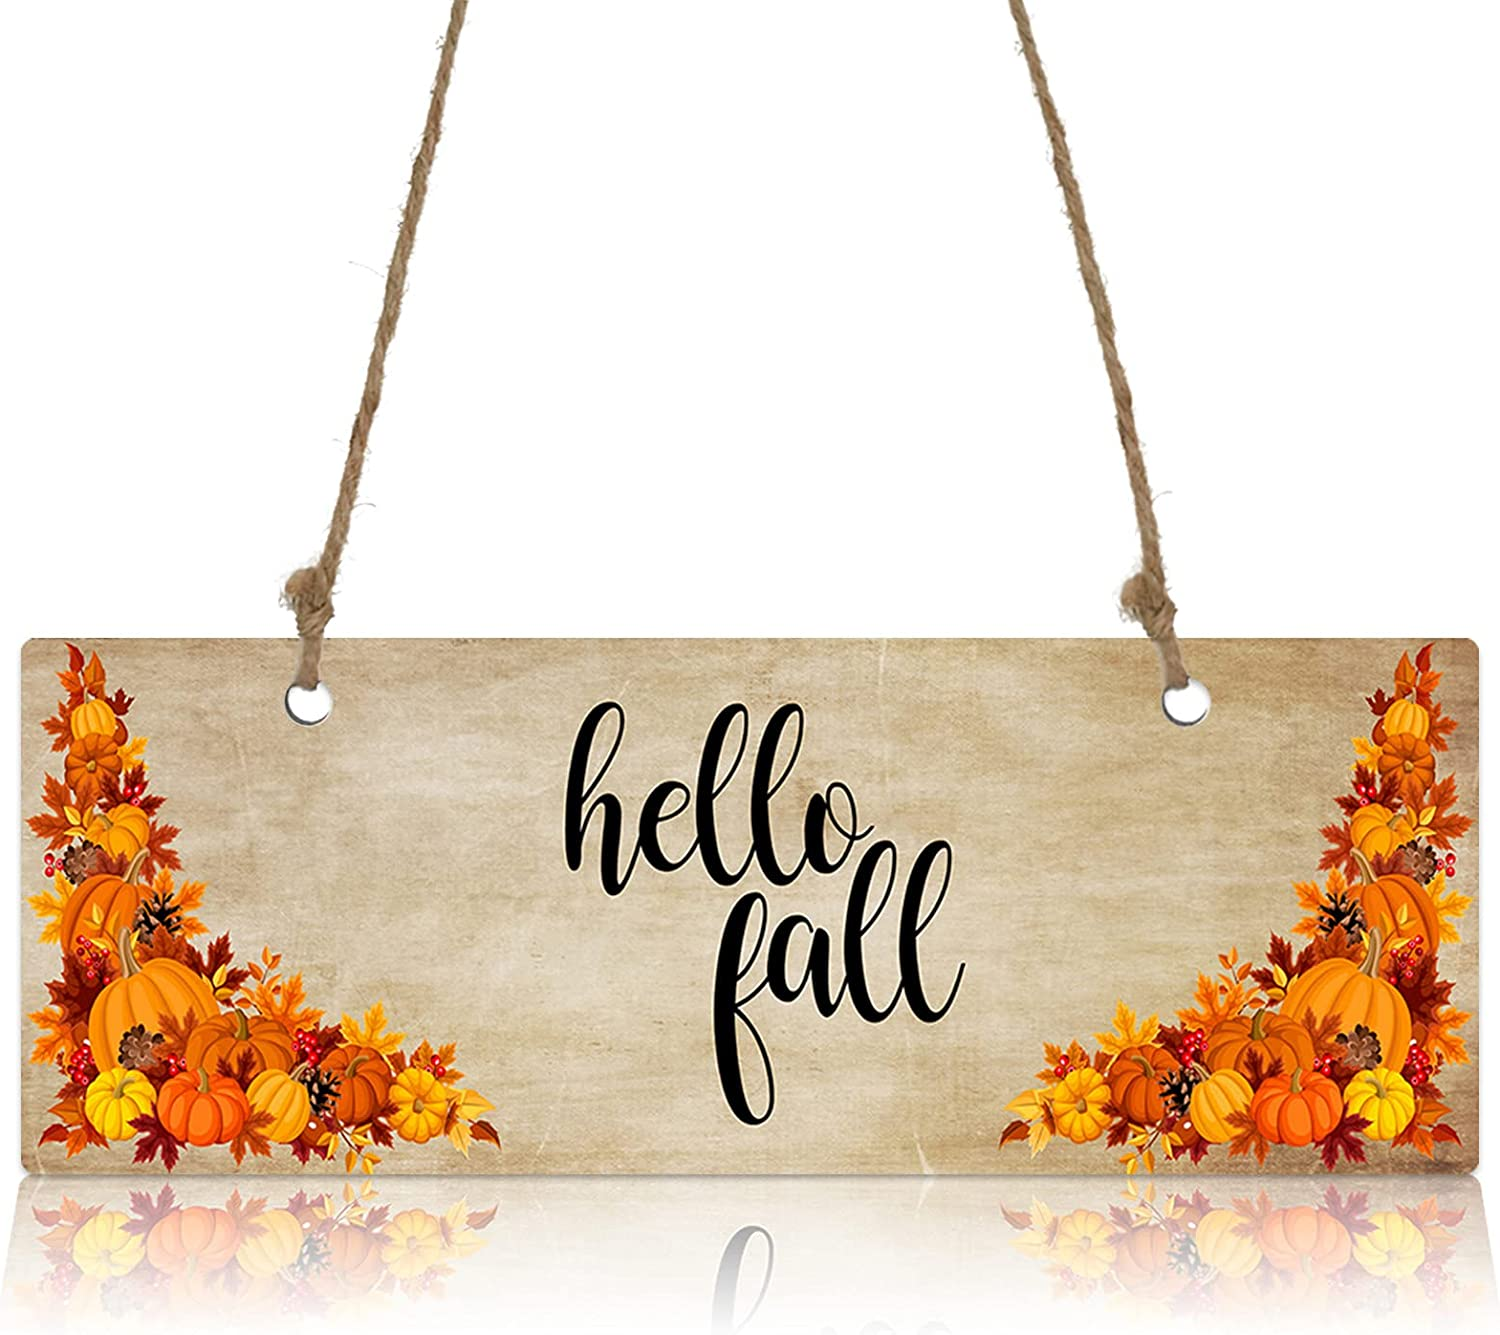 Wall Sign Wood Plaque Farm Pl Seattle Mall Welcome Thanksgiving Autumn 2021new shipping free shipping Wooden